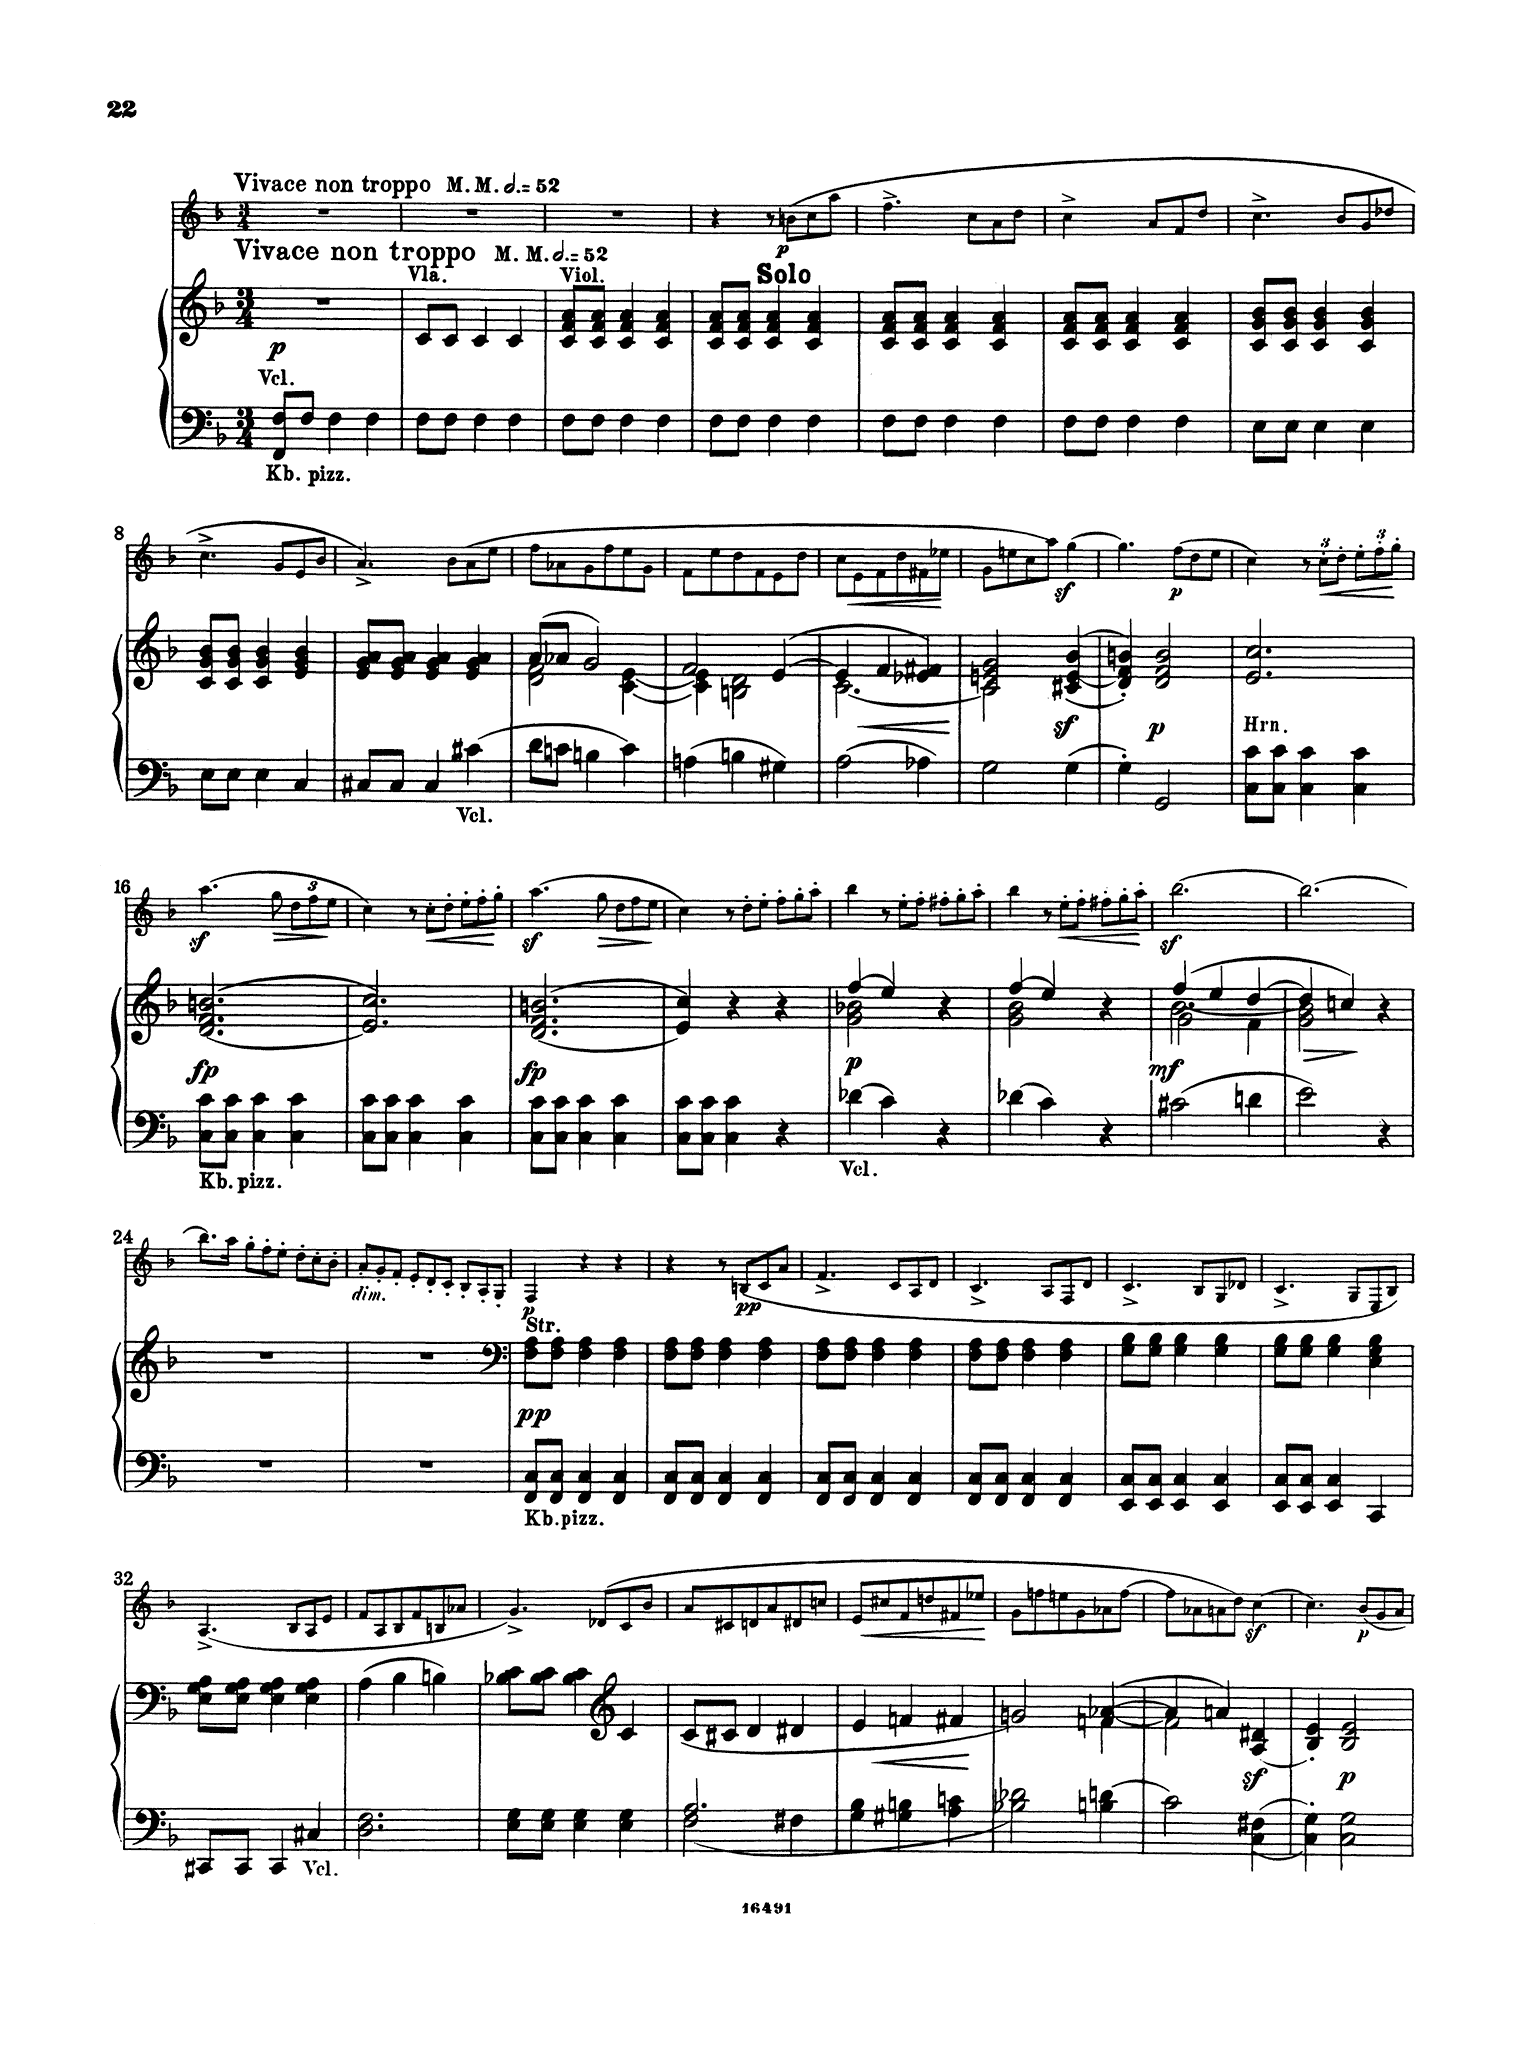 Clarinet Concerto No. 3 in F Minor, WoO 19 - Movement 3